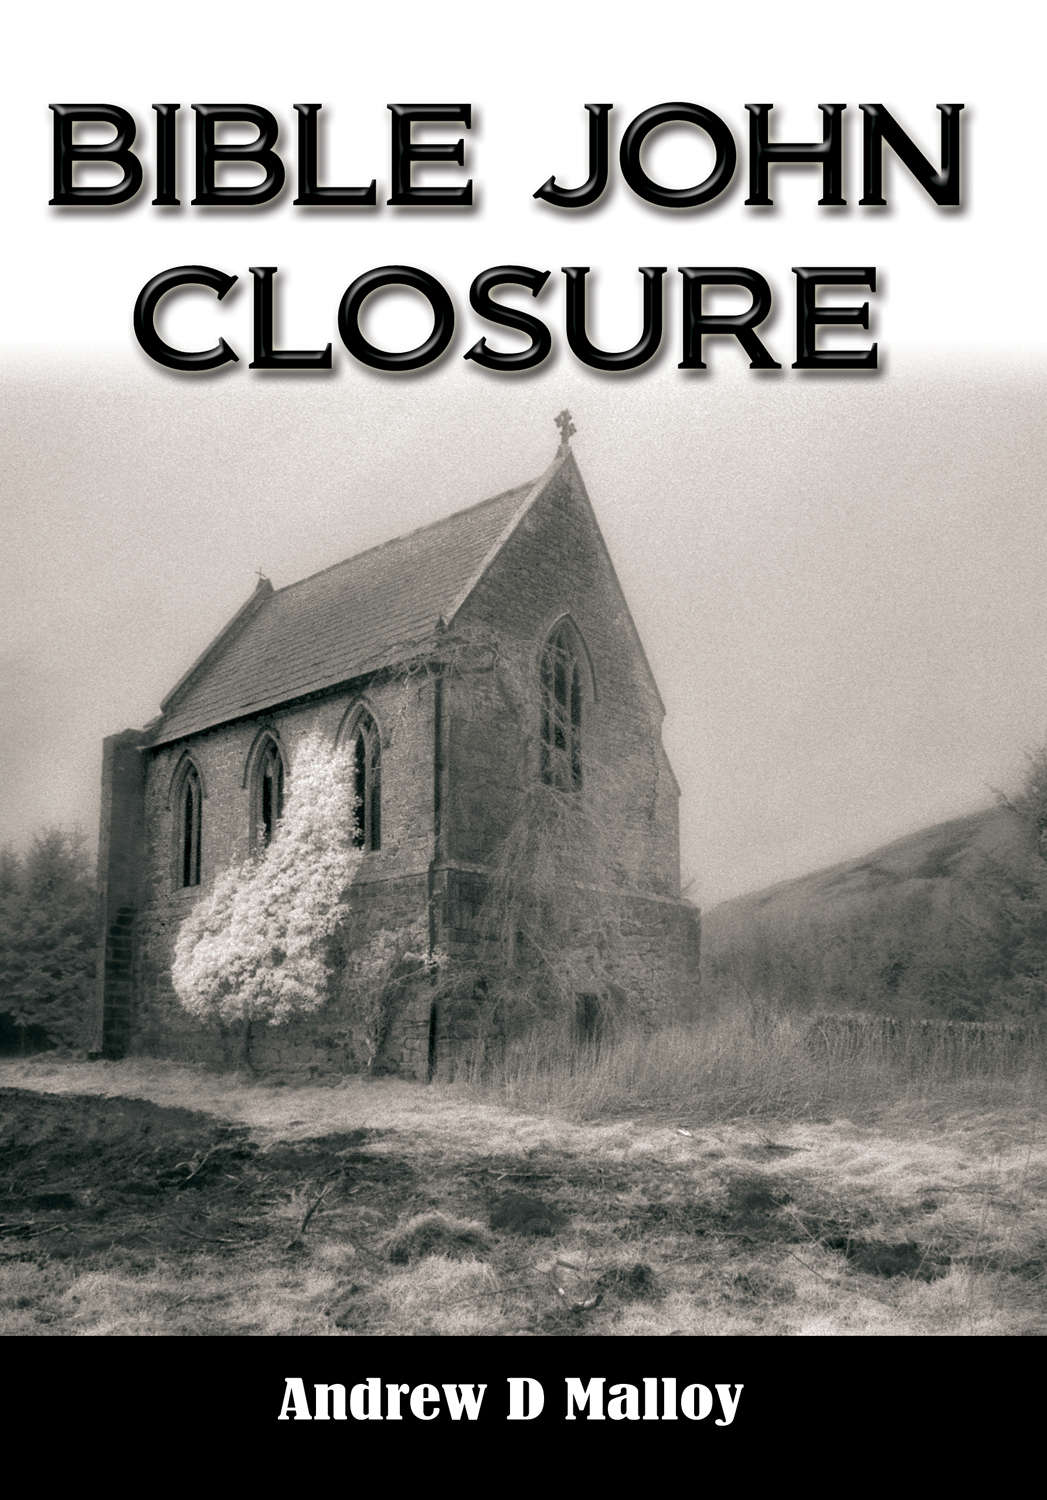 Bible John - Closure